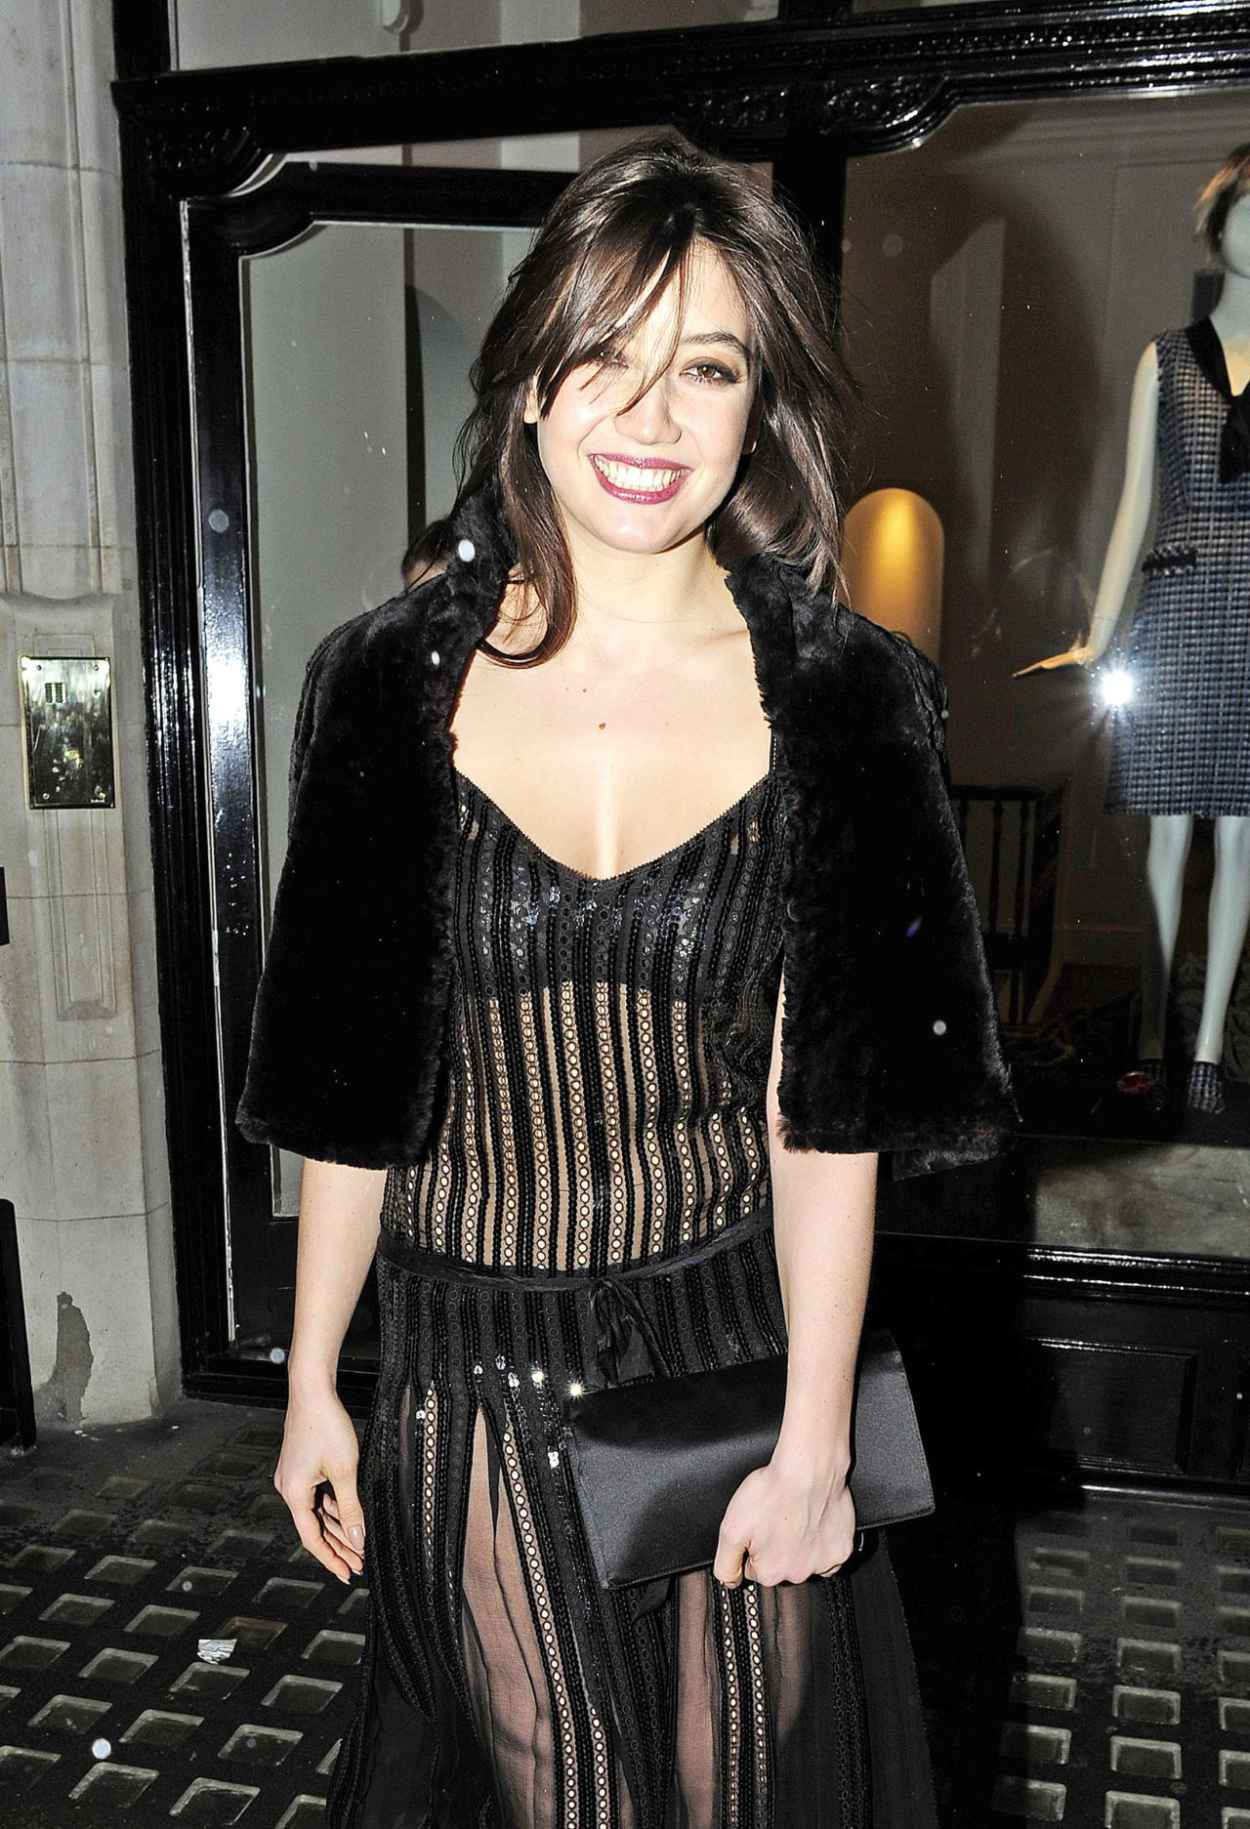 Daisy Lowe Wearing Marc Jacobs Dress - Leaving the Marc Jacobs Store in London, February 2015-1